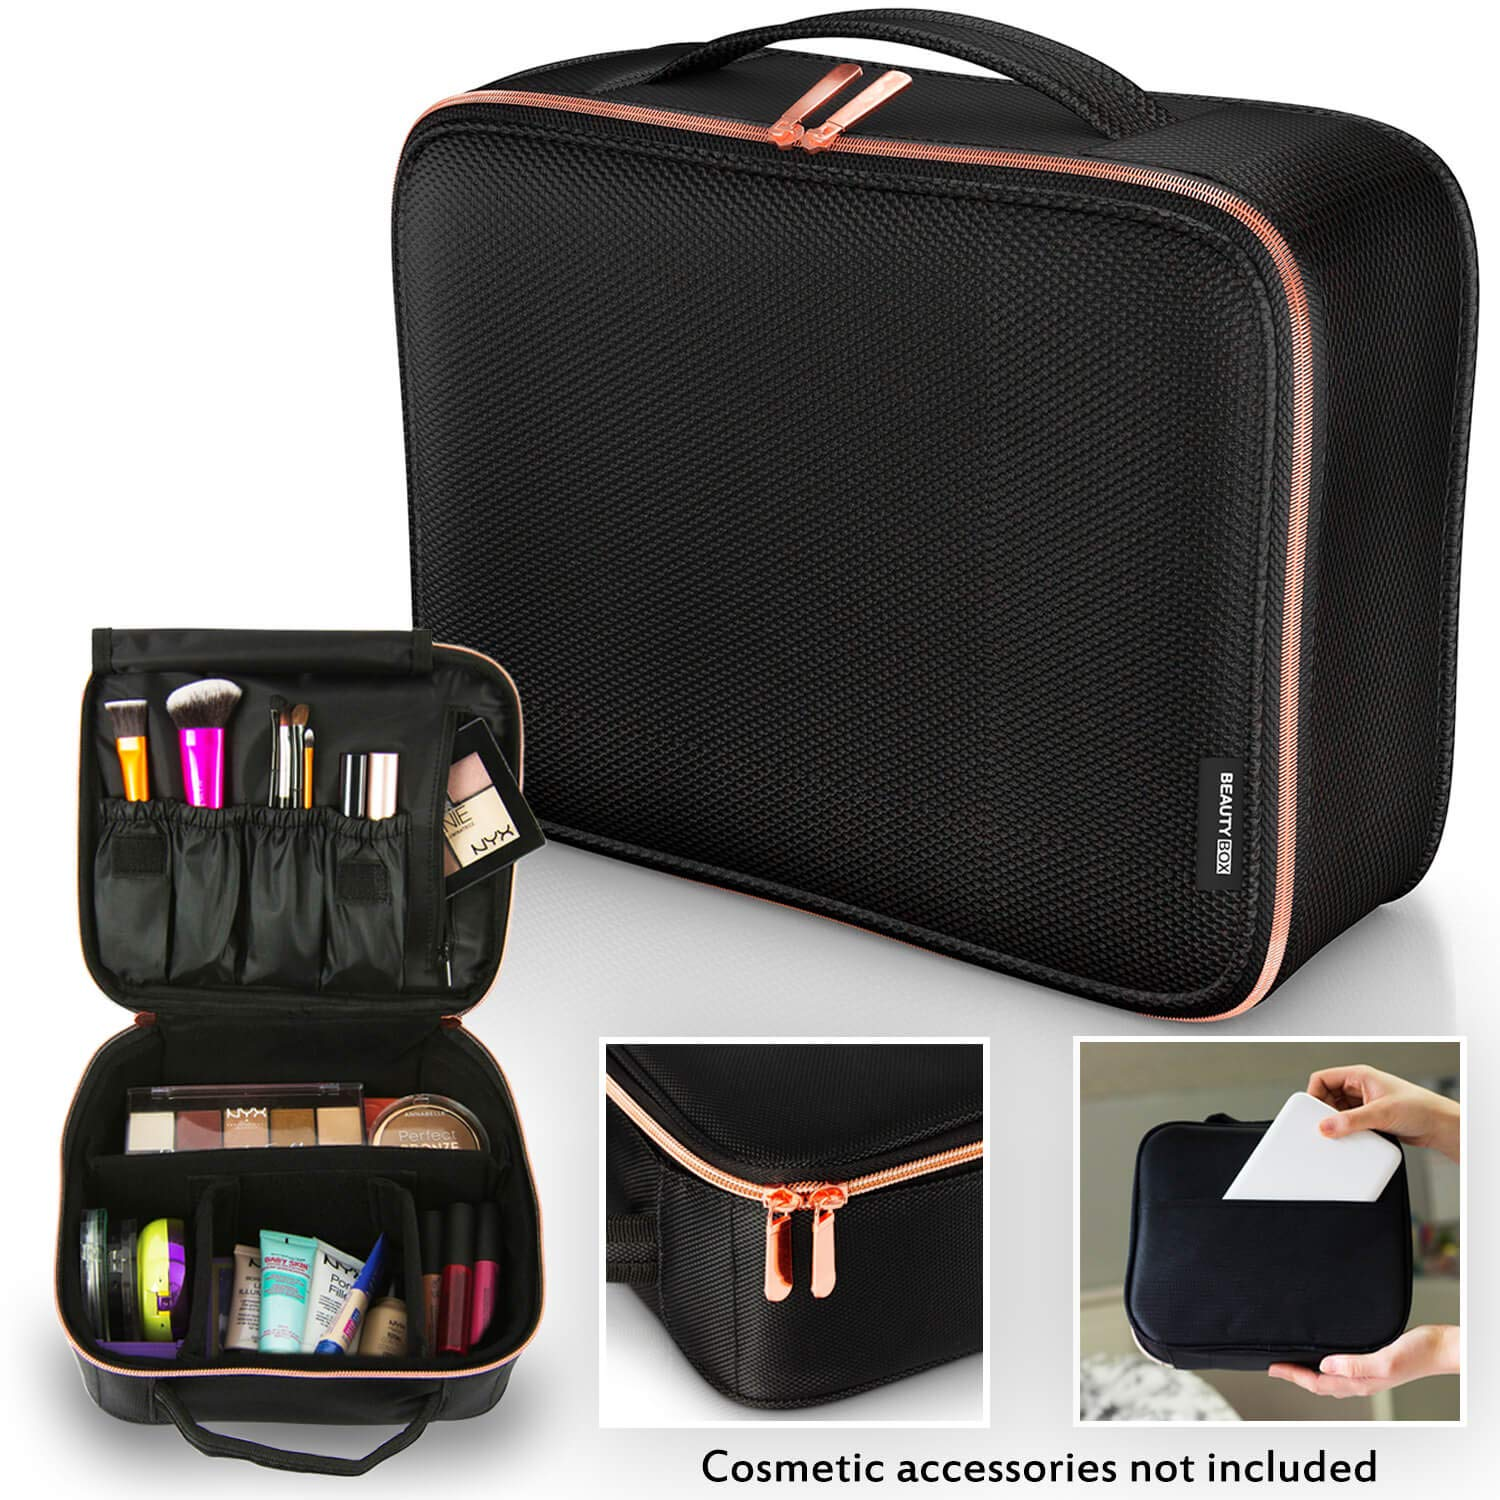 Premium Travel Makeup Bag, Cosmetic Bag with Rose Gold Zipper & Adjustable Dividers